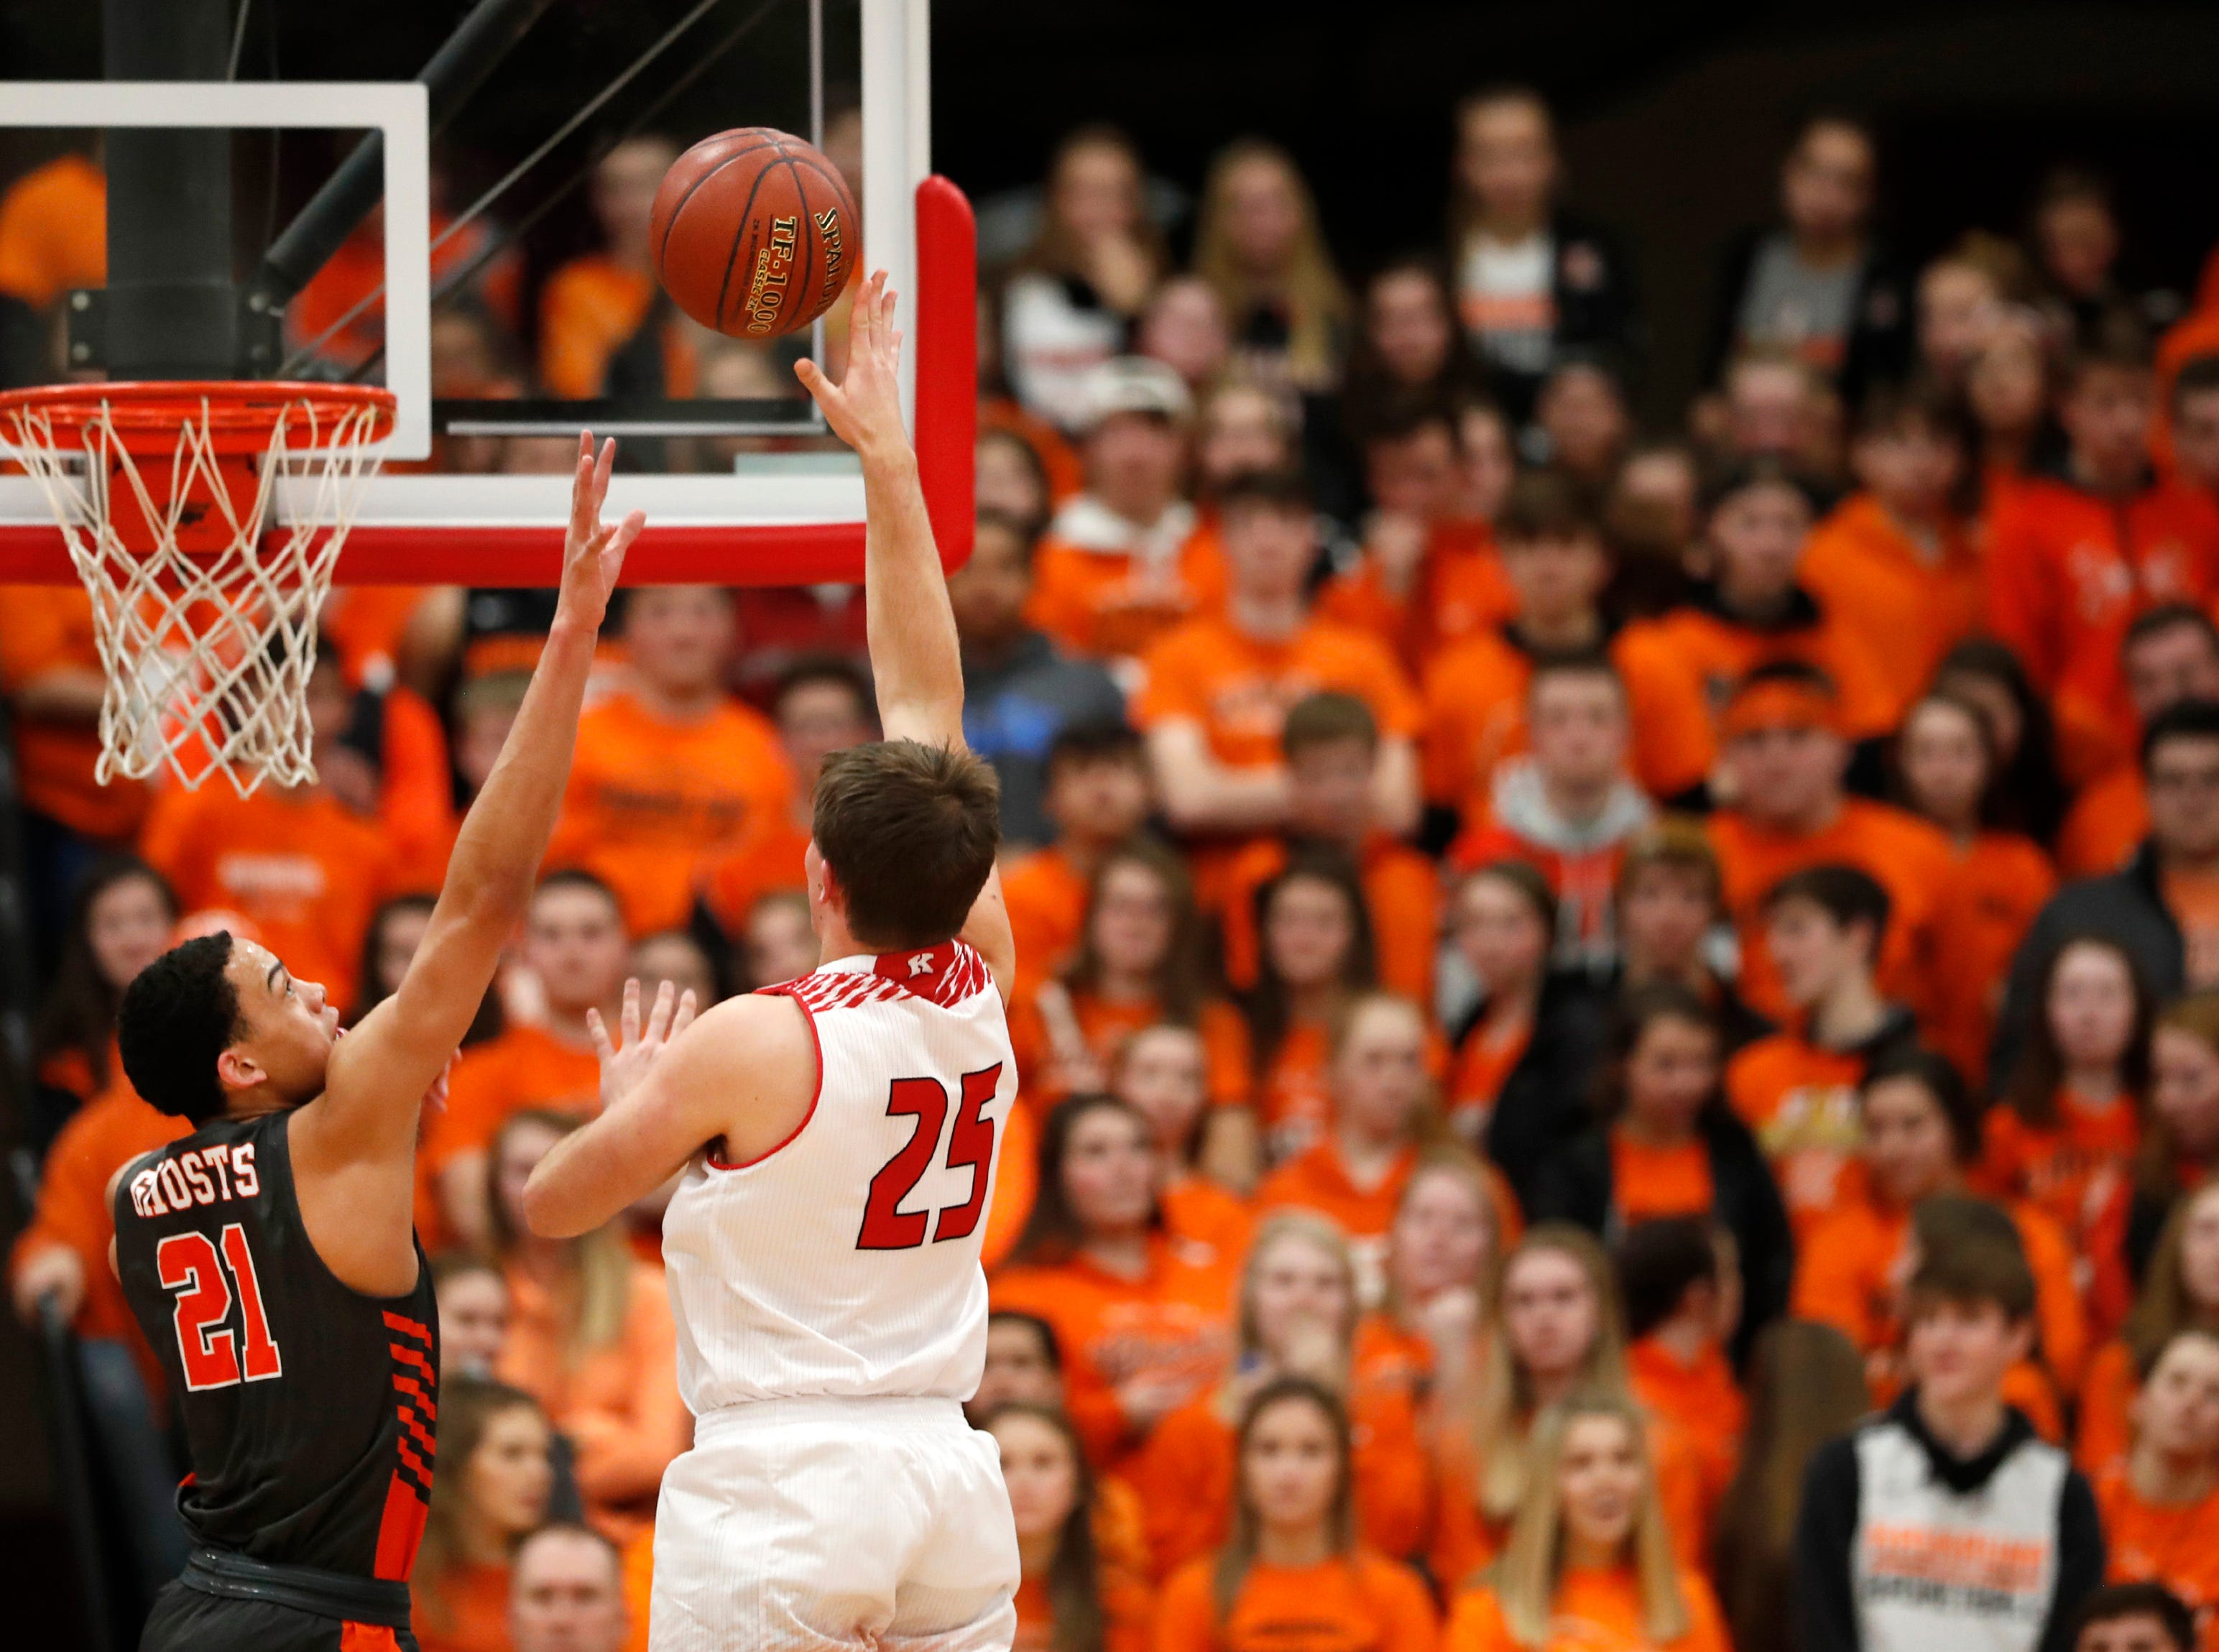 Kaukauna High School's Donovan Ivory tries to block a shot from Kimberly High School's Mitch Bartol Friday, Dec. 7, 2018, in Kimberly, Wis.